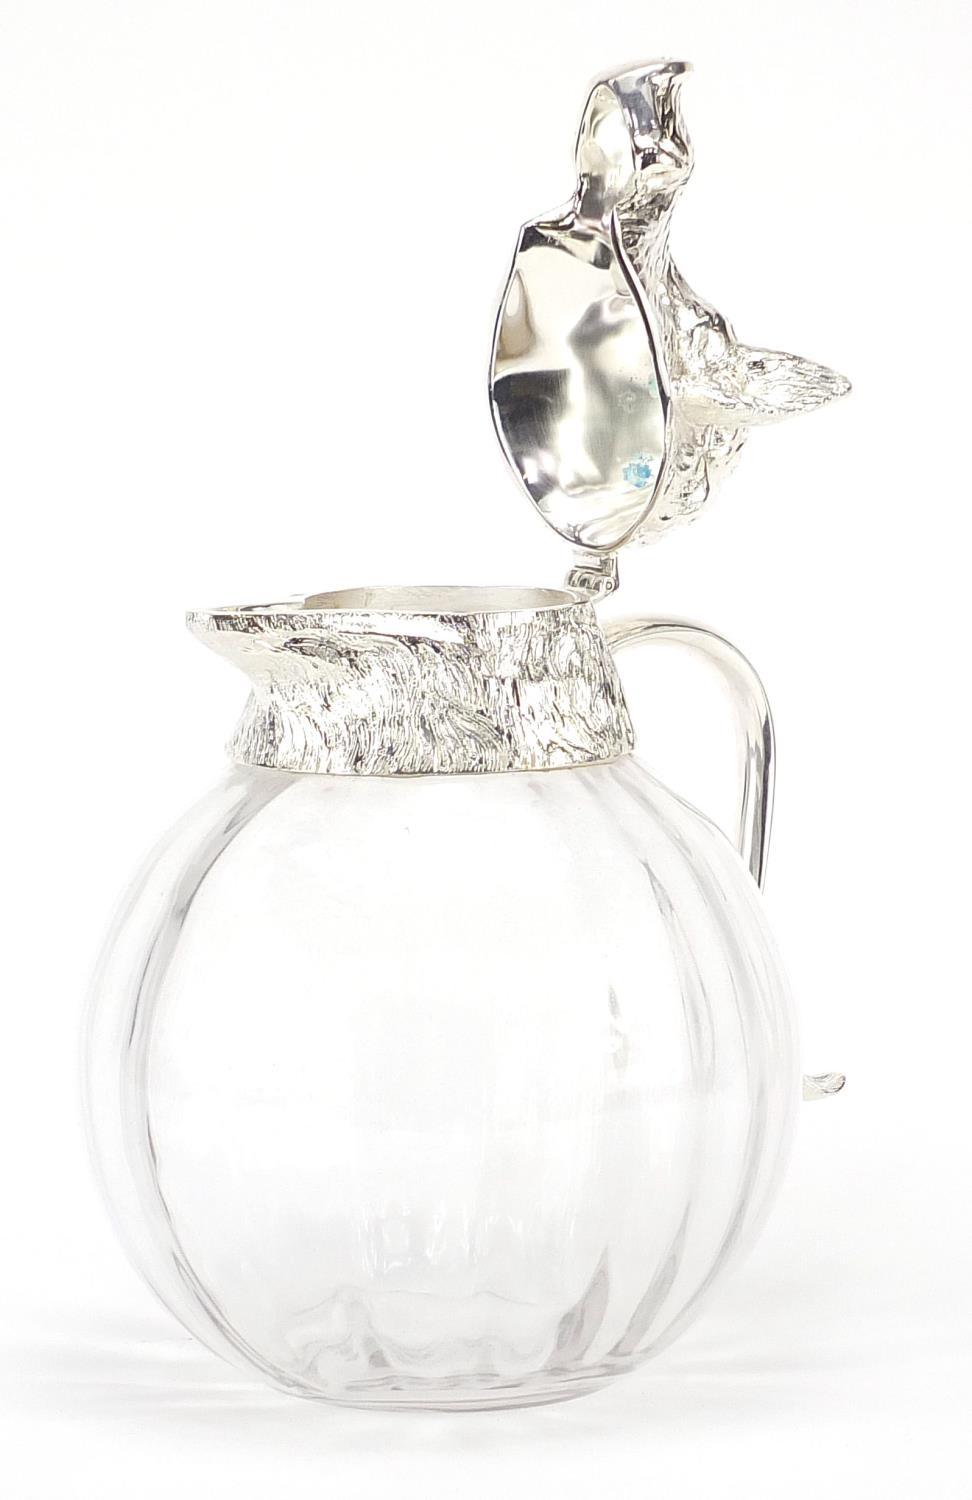 Manner of Valenti, globular glass carafe with silver plated mounts in the form of a boars head, 28cm - Image 4 of 10